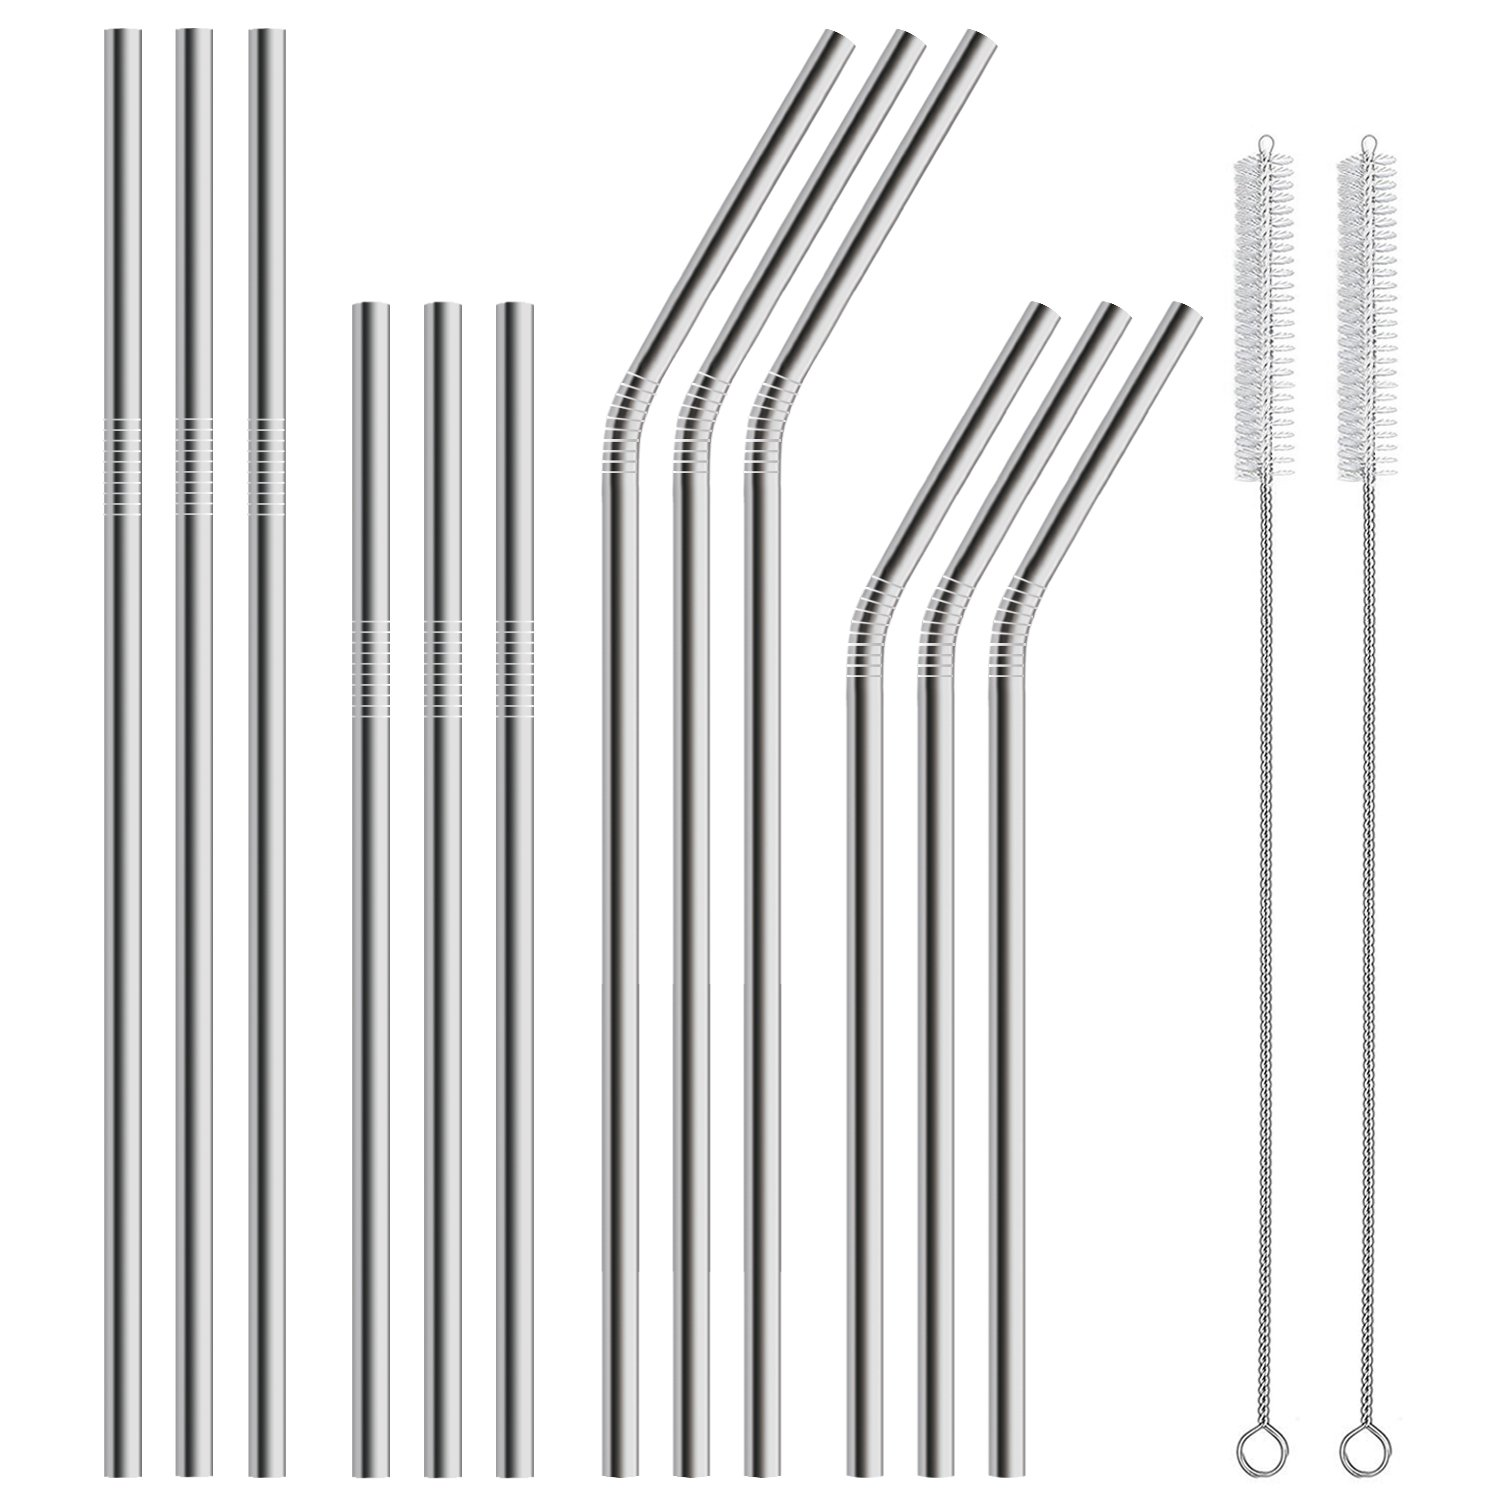 Hiware 12-Pack Stainless Steel Metal Straws Curved with 2 Cleaning Brush - Reusable Drinking Straws For 30oz / 20oz Tumblers Yeti, Dishwasher Safe